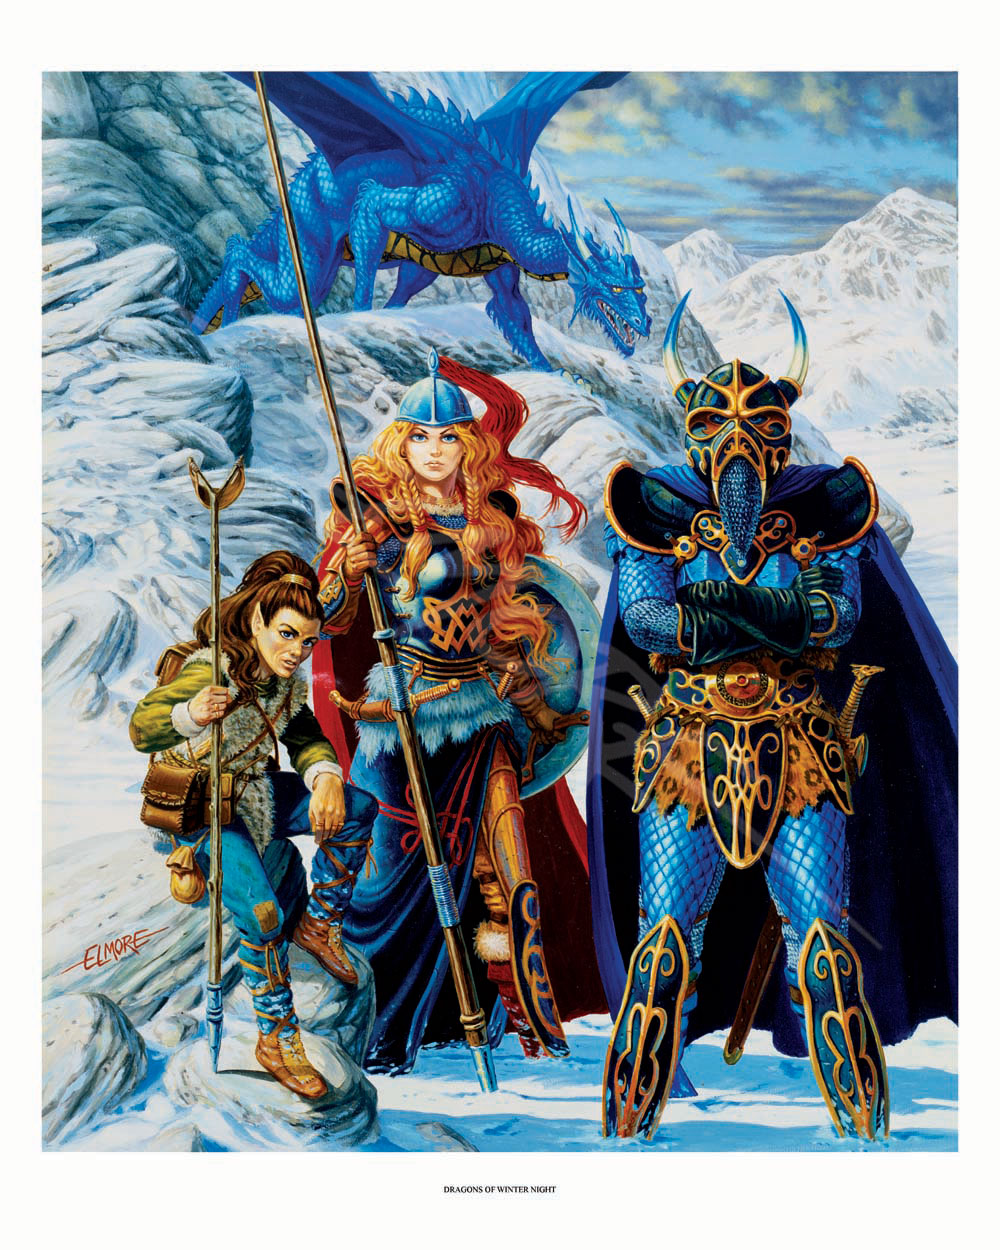 Dragonlance - Dragons Of Winter Night Giclee